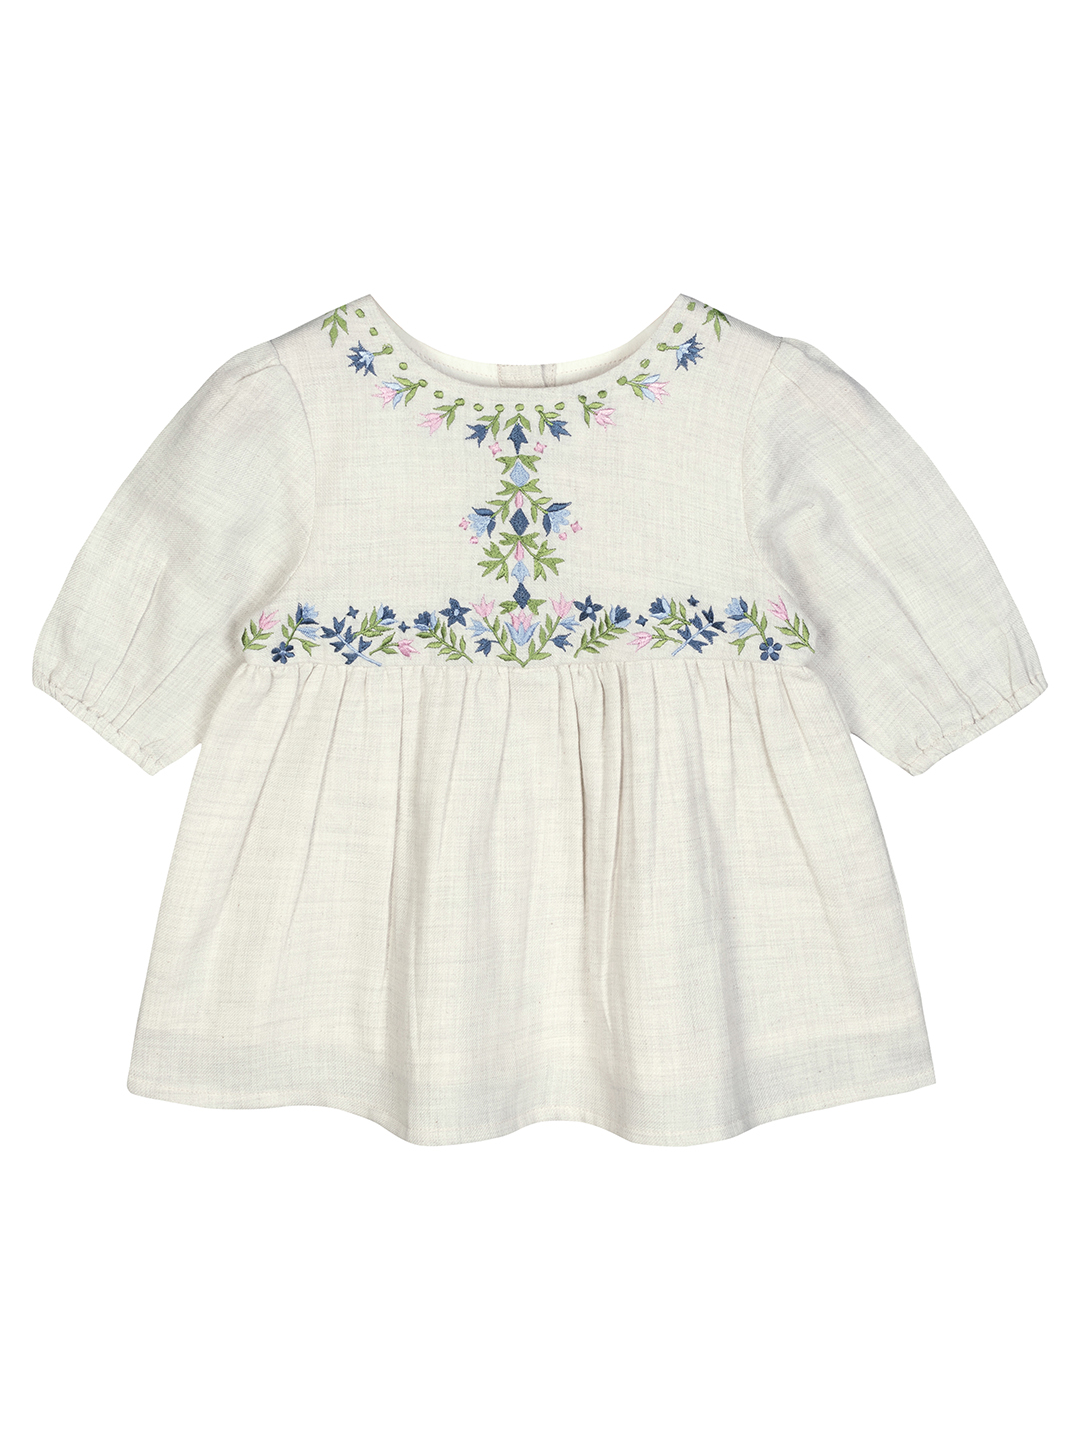 Budding Bees | Budding Bees Baby Girls Embroidered Melange Grey Top